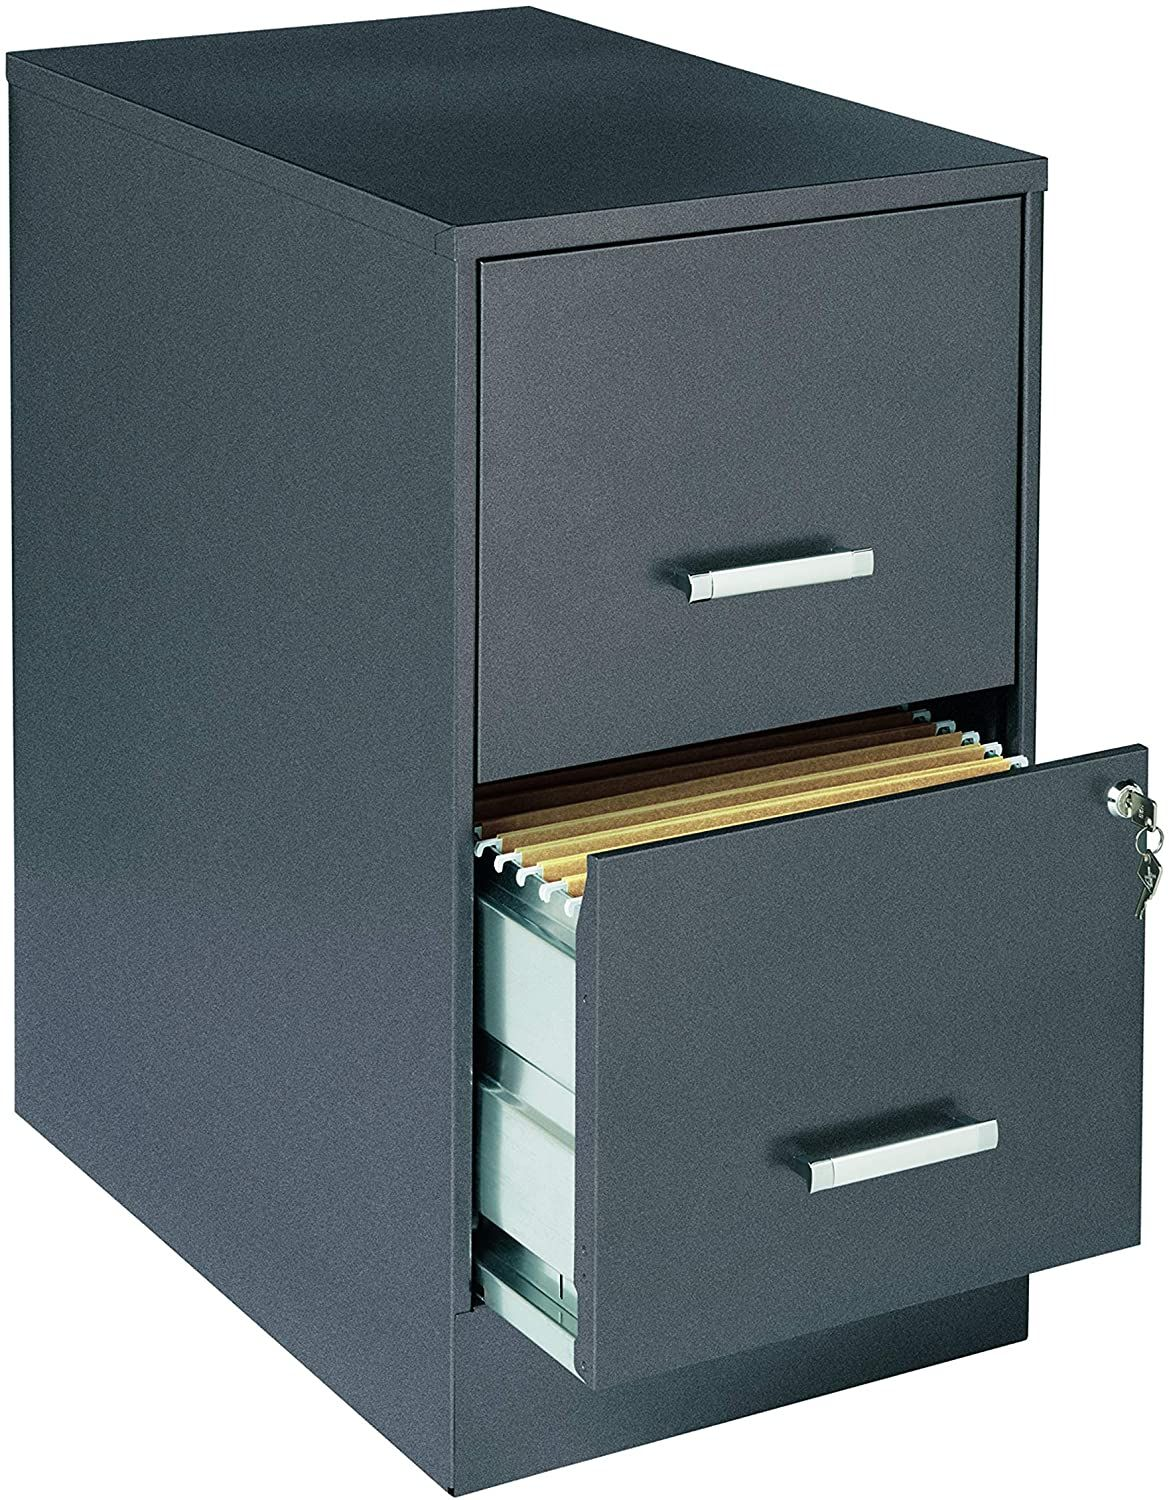 Lorell Soho 22 2 Drawer File Cabinet Llr16871 In 2020 Filing Cabinet Cabinet Cabinet Design